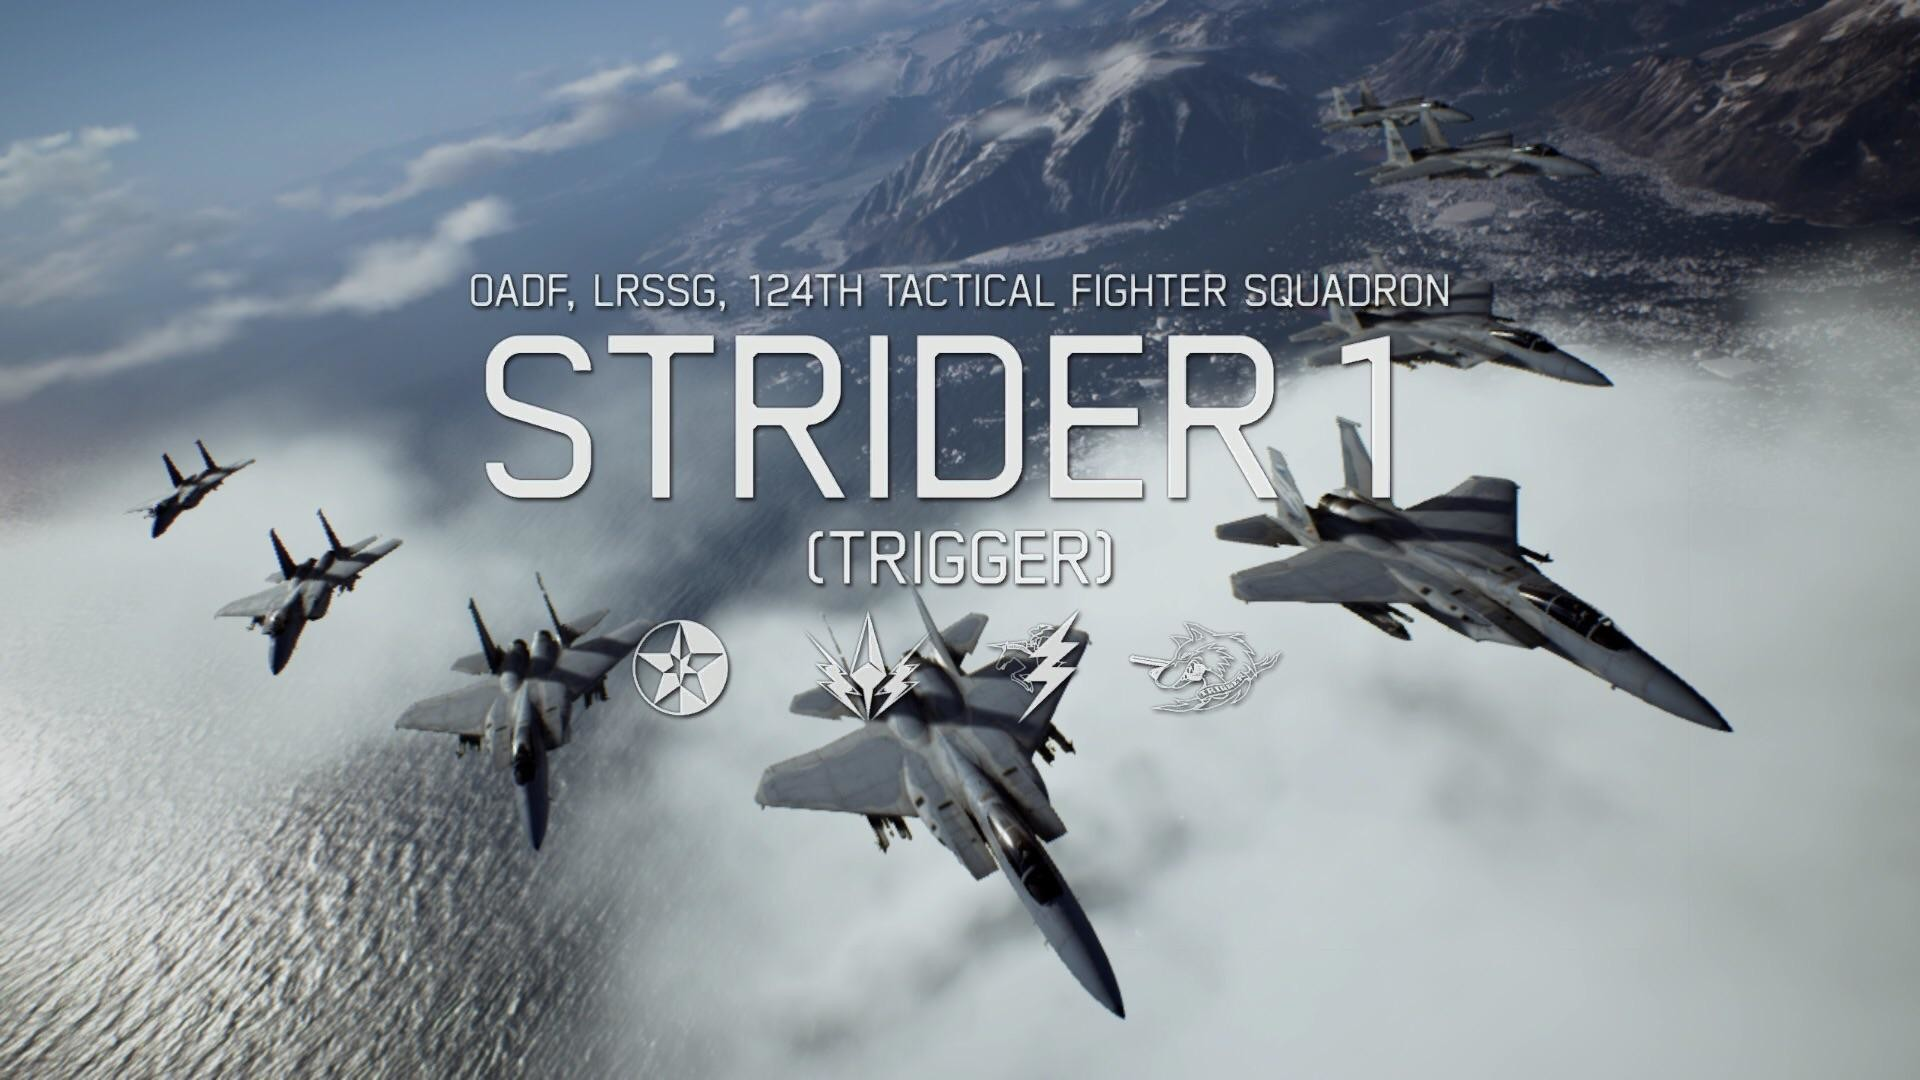 Res: 1920x1080, Ace Combat 7(Spoilers)LRSSG wallpaper with the correct plane this time ...